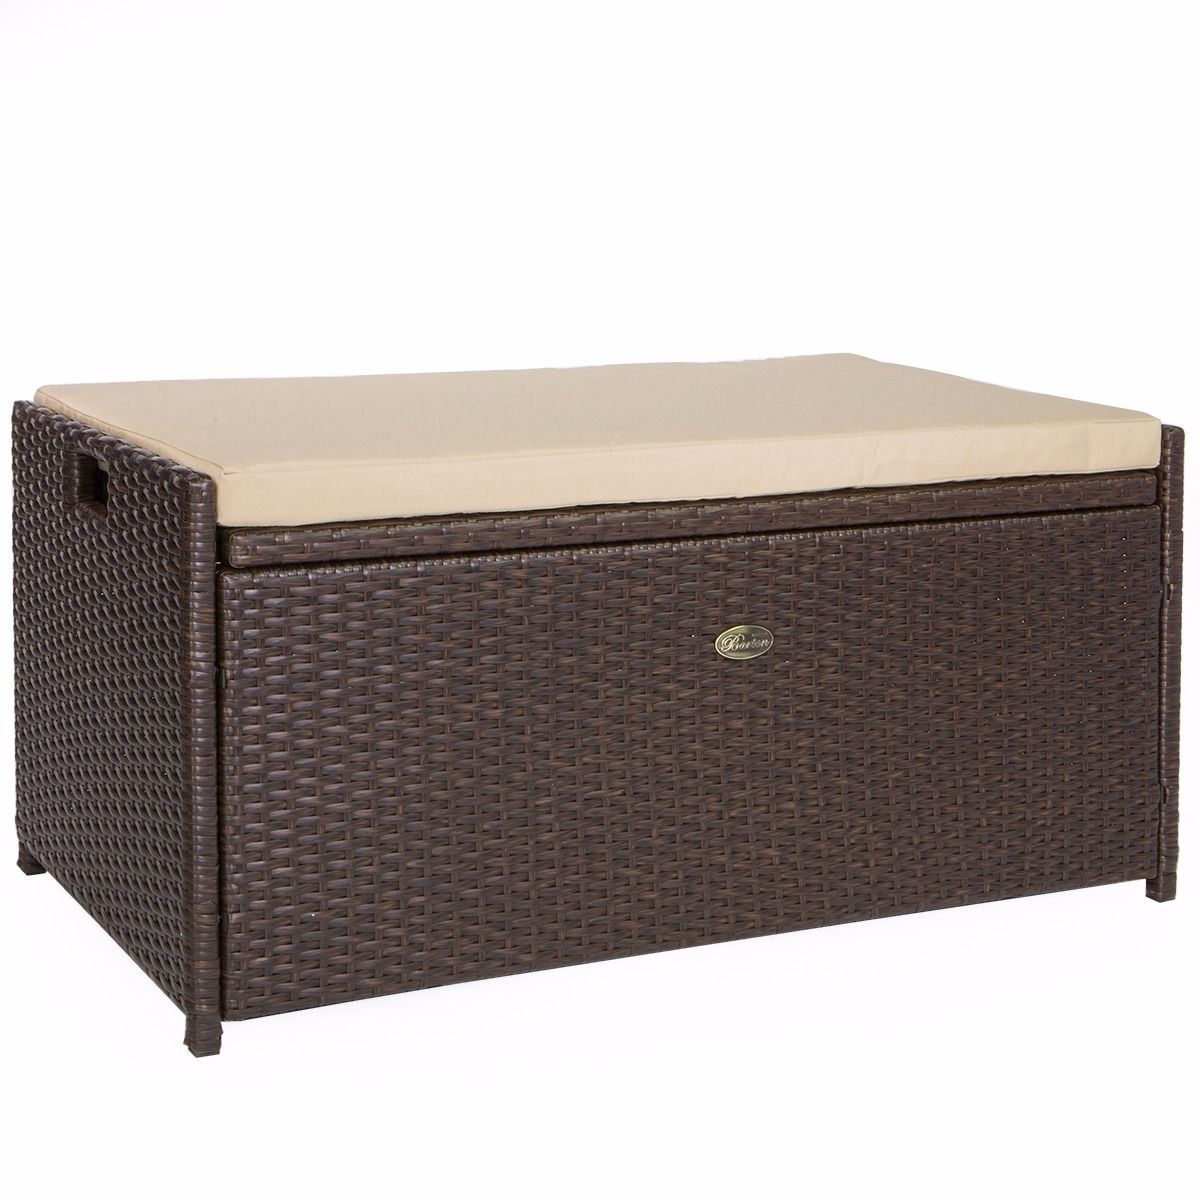 Details About All Weather Rattan Pool Deck Box Storage Wicker Backyard  Patio Outdoor W/ Seat